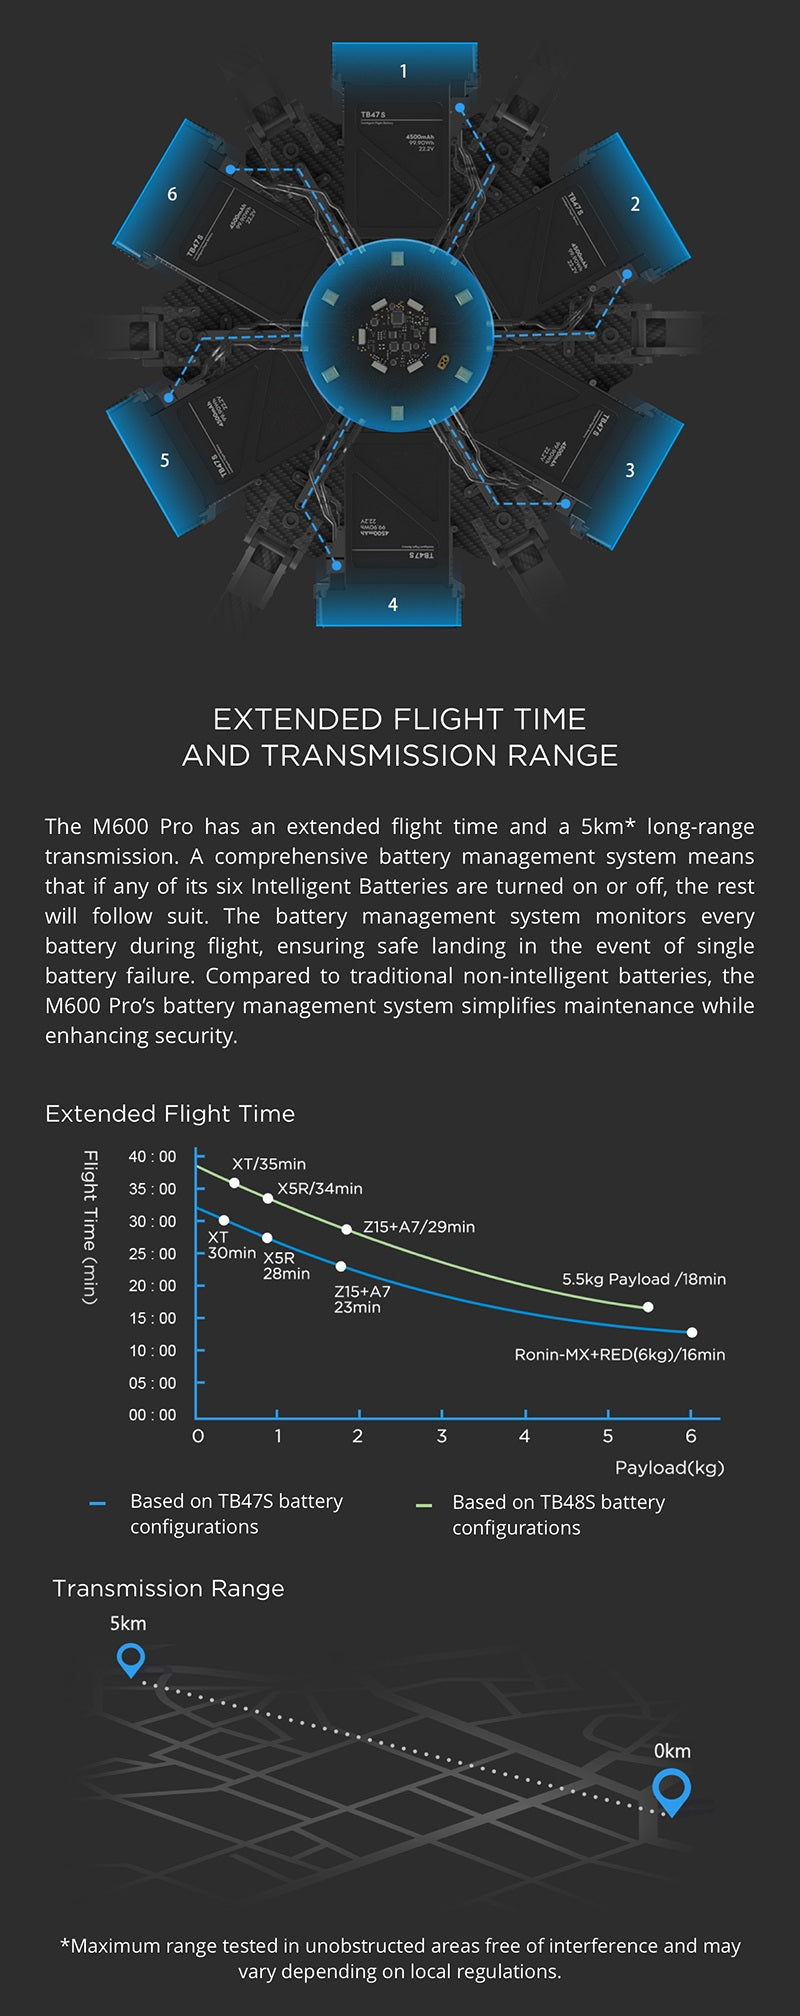 Colors may not represent actual product - Technical Specifications For The Dji Matrice 600 Can Be Found In Dji Matrice 600 Pro Specifications